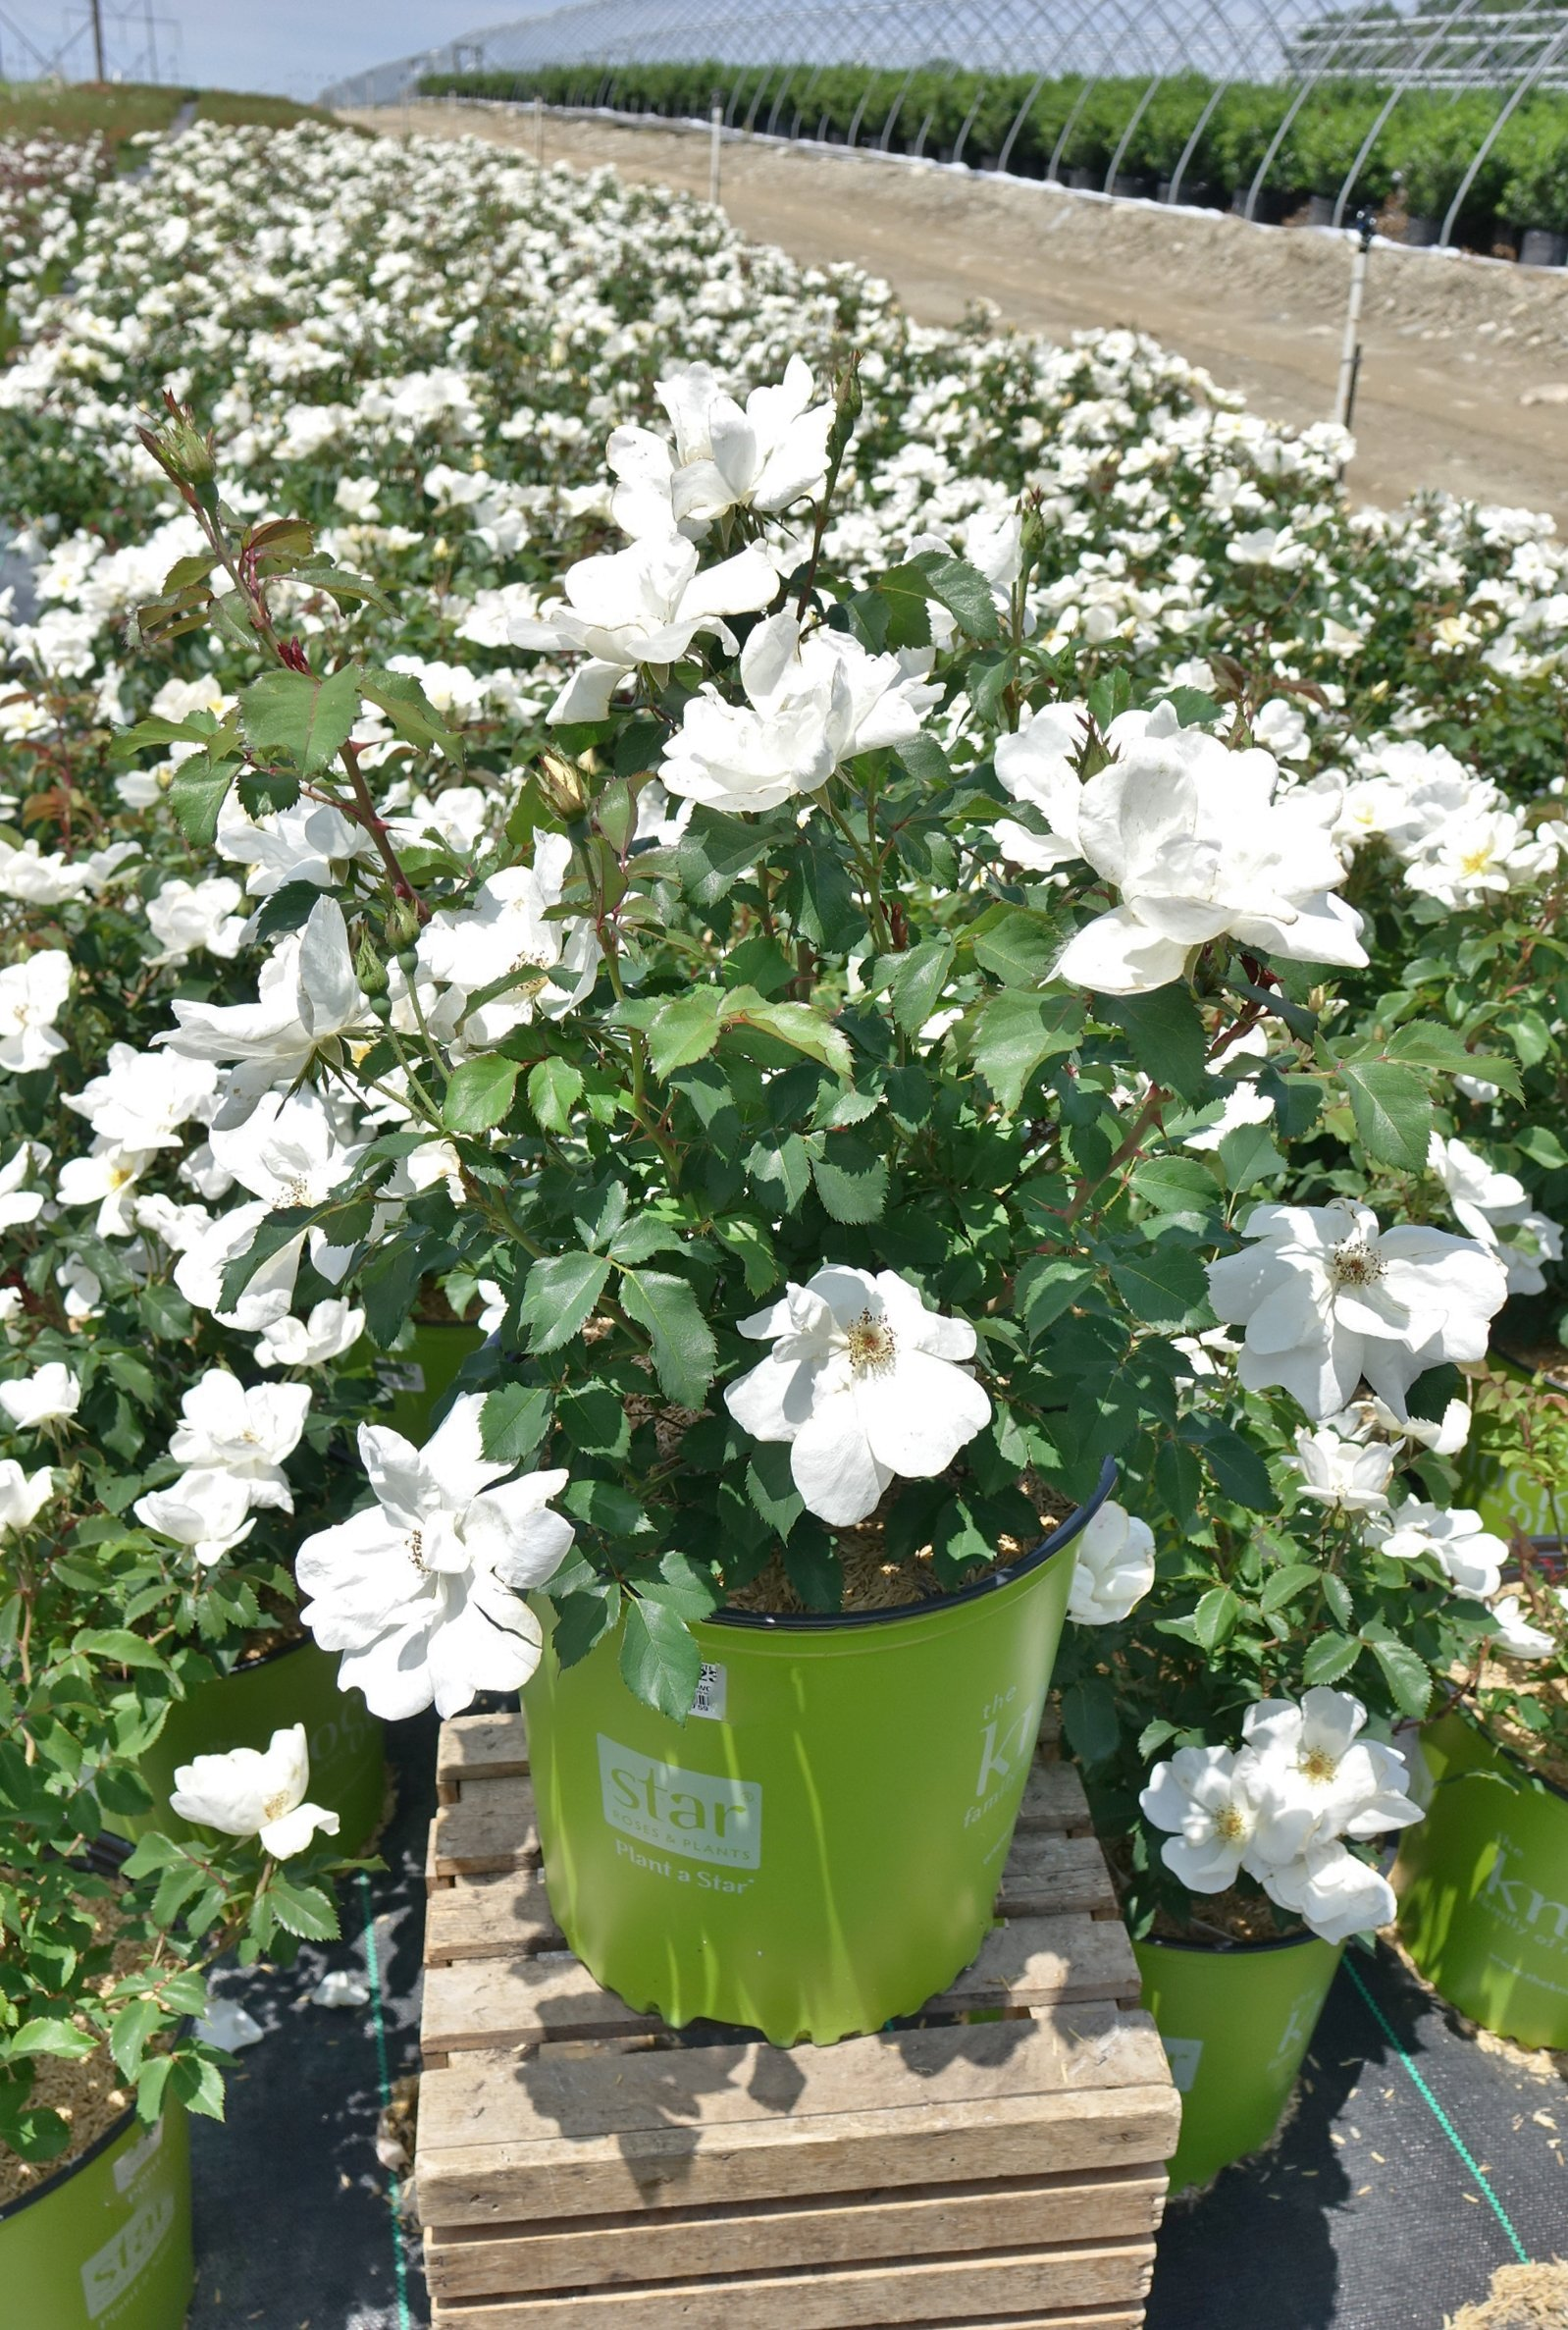 Knock Out Roses - Rosa White Knock Out (Rose) Rose, white flowers, #3 - Size Container by Green Promise Farms (Image #3)